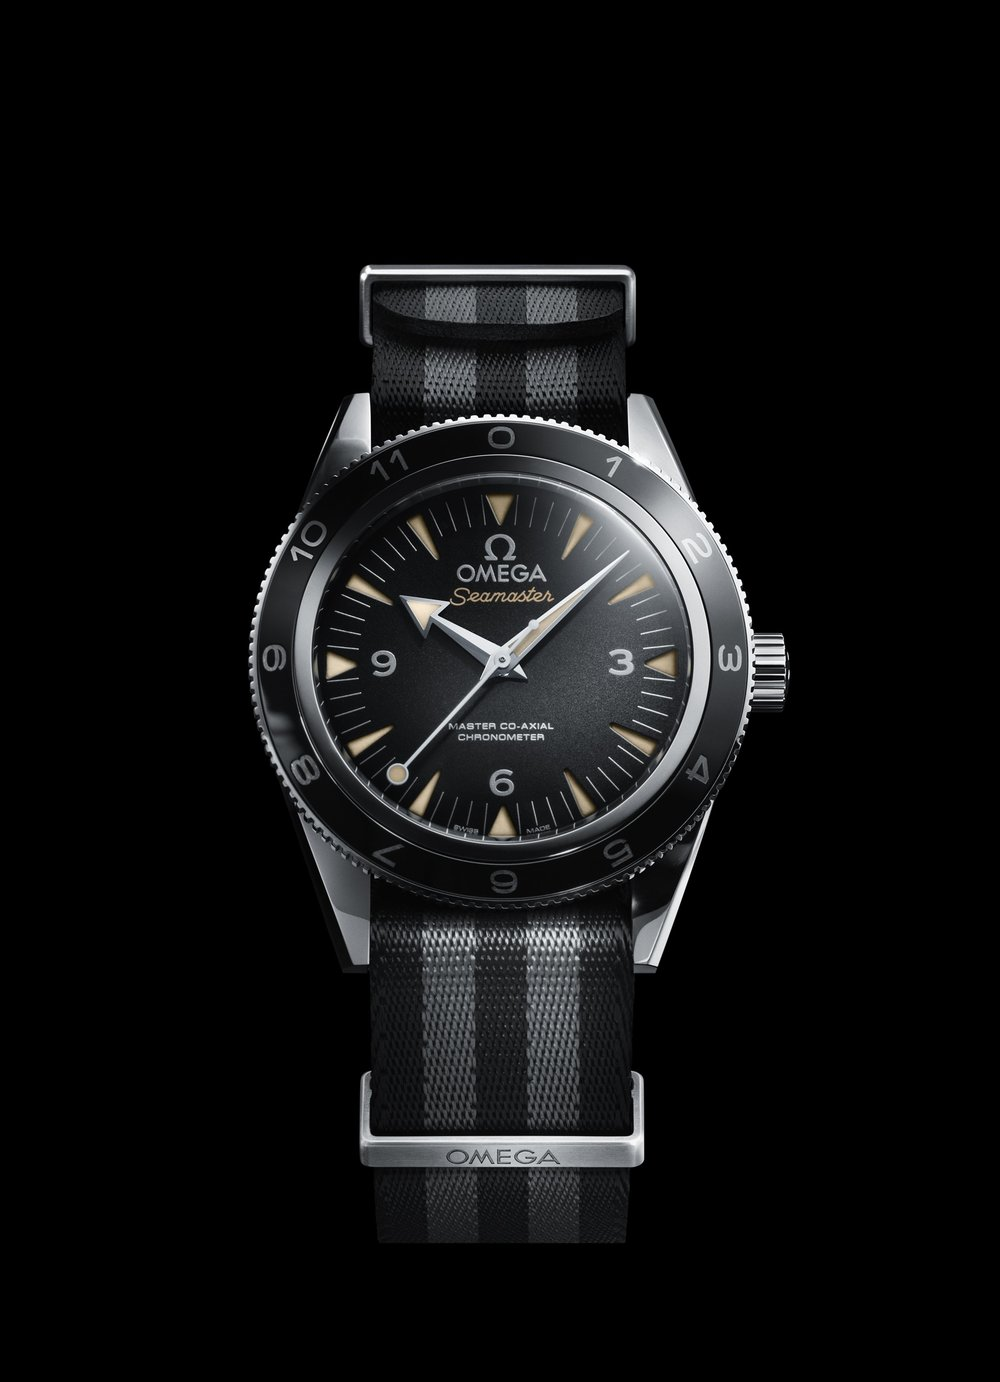 omega-james-bond-seamaster-watch